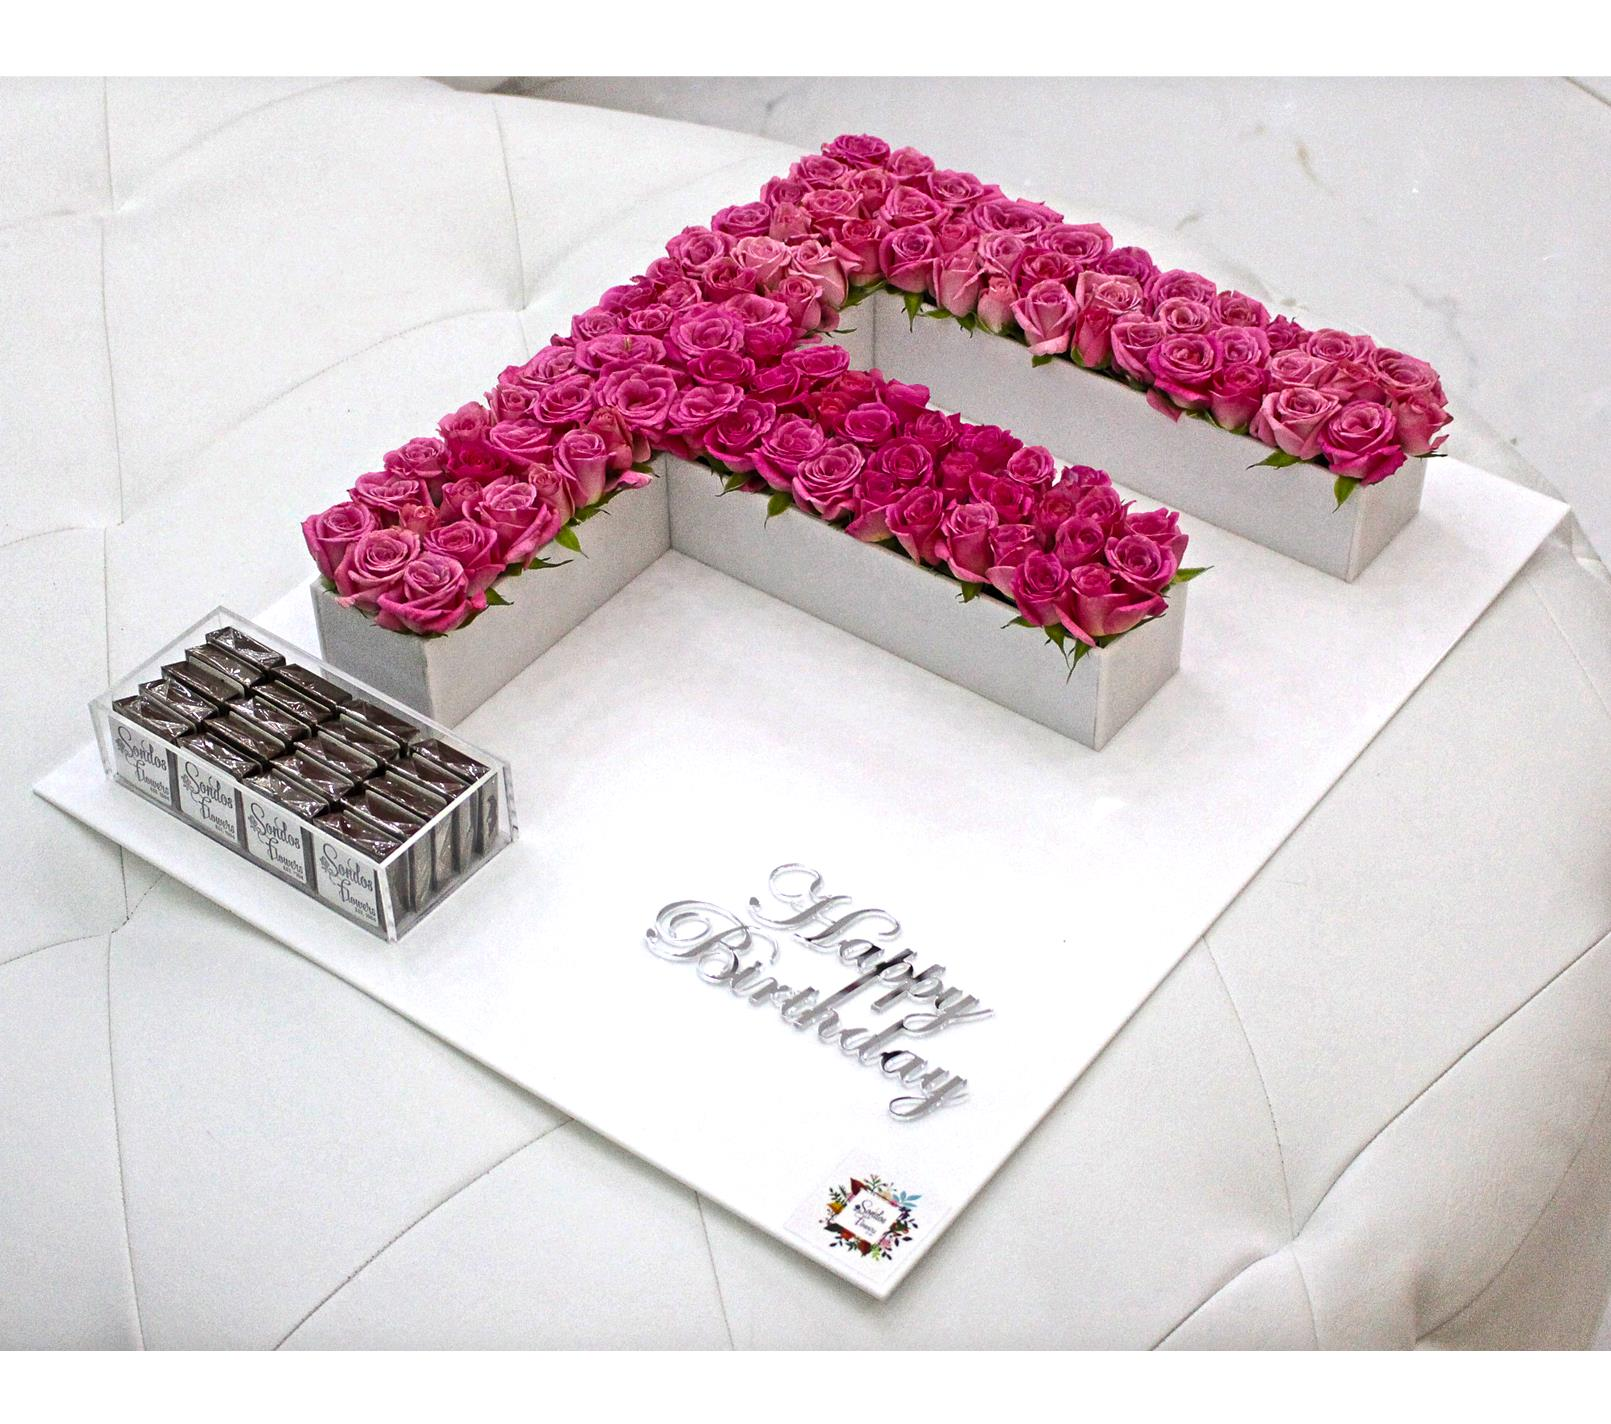 happy birthday f ; Letter_F_flowers_2_(1)